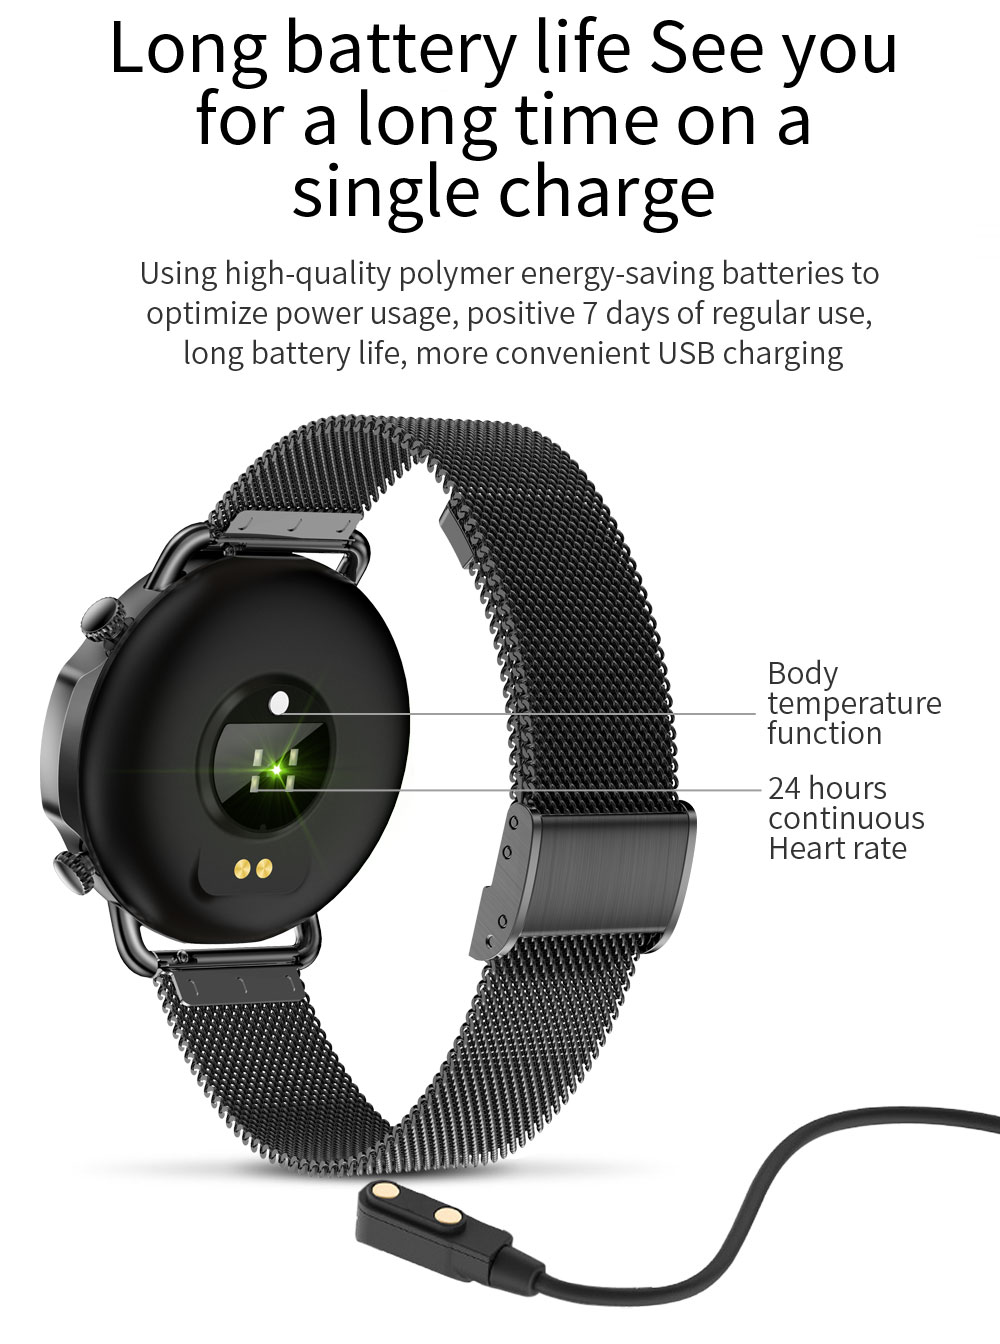 H266d134a57894b5bac4652278b4beef5A 2021 Women Smart Watch 1.28 inch HD Screen IP67 Waterproof Lady's Watches Body Temperature Heart Rate Monitor PK V23